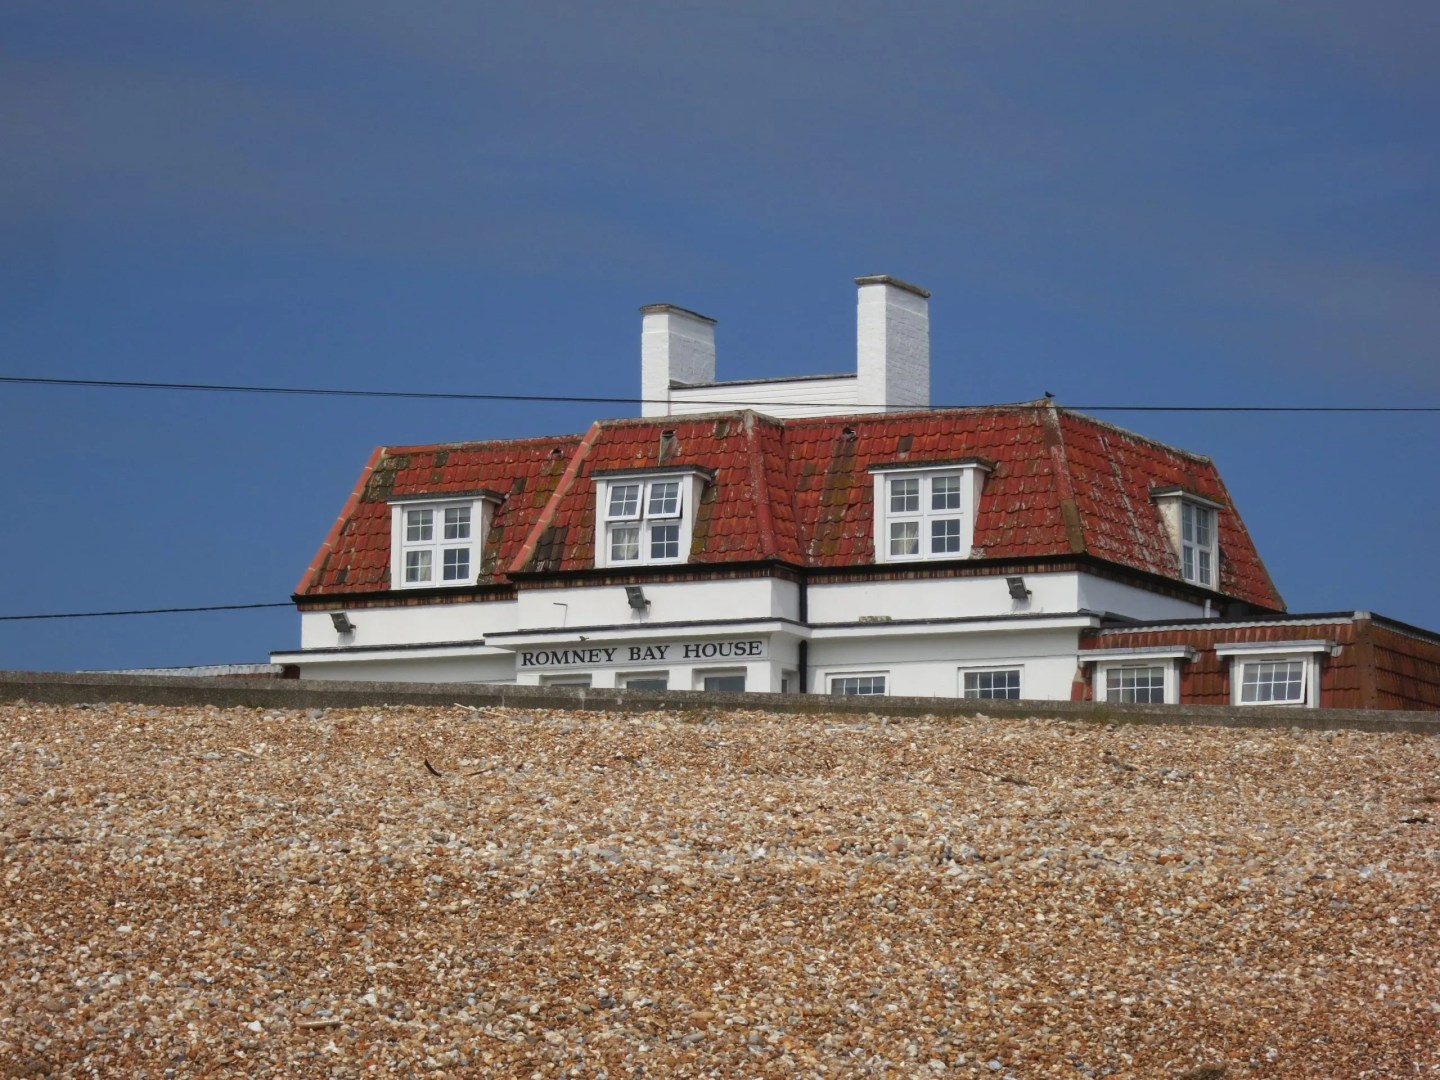 Gravel bank with Romney Bay House Hotel